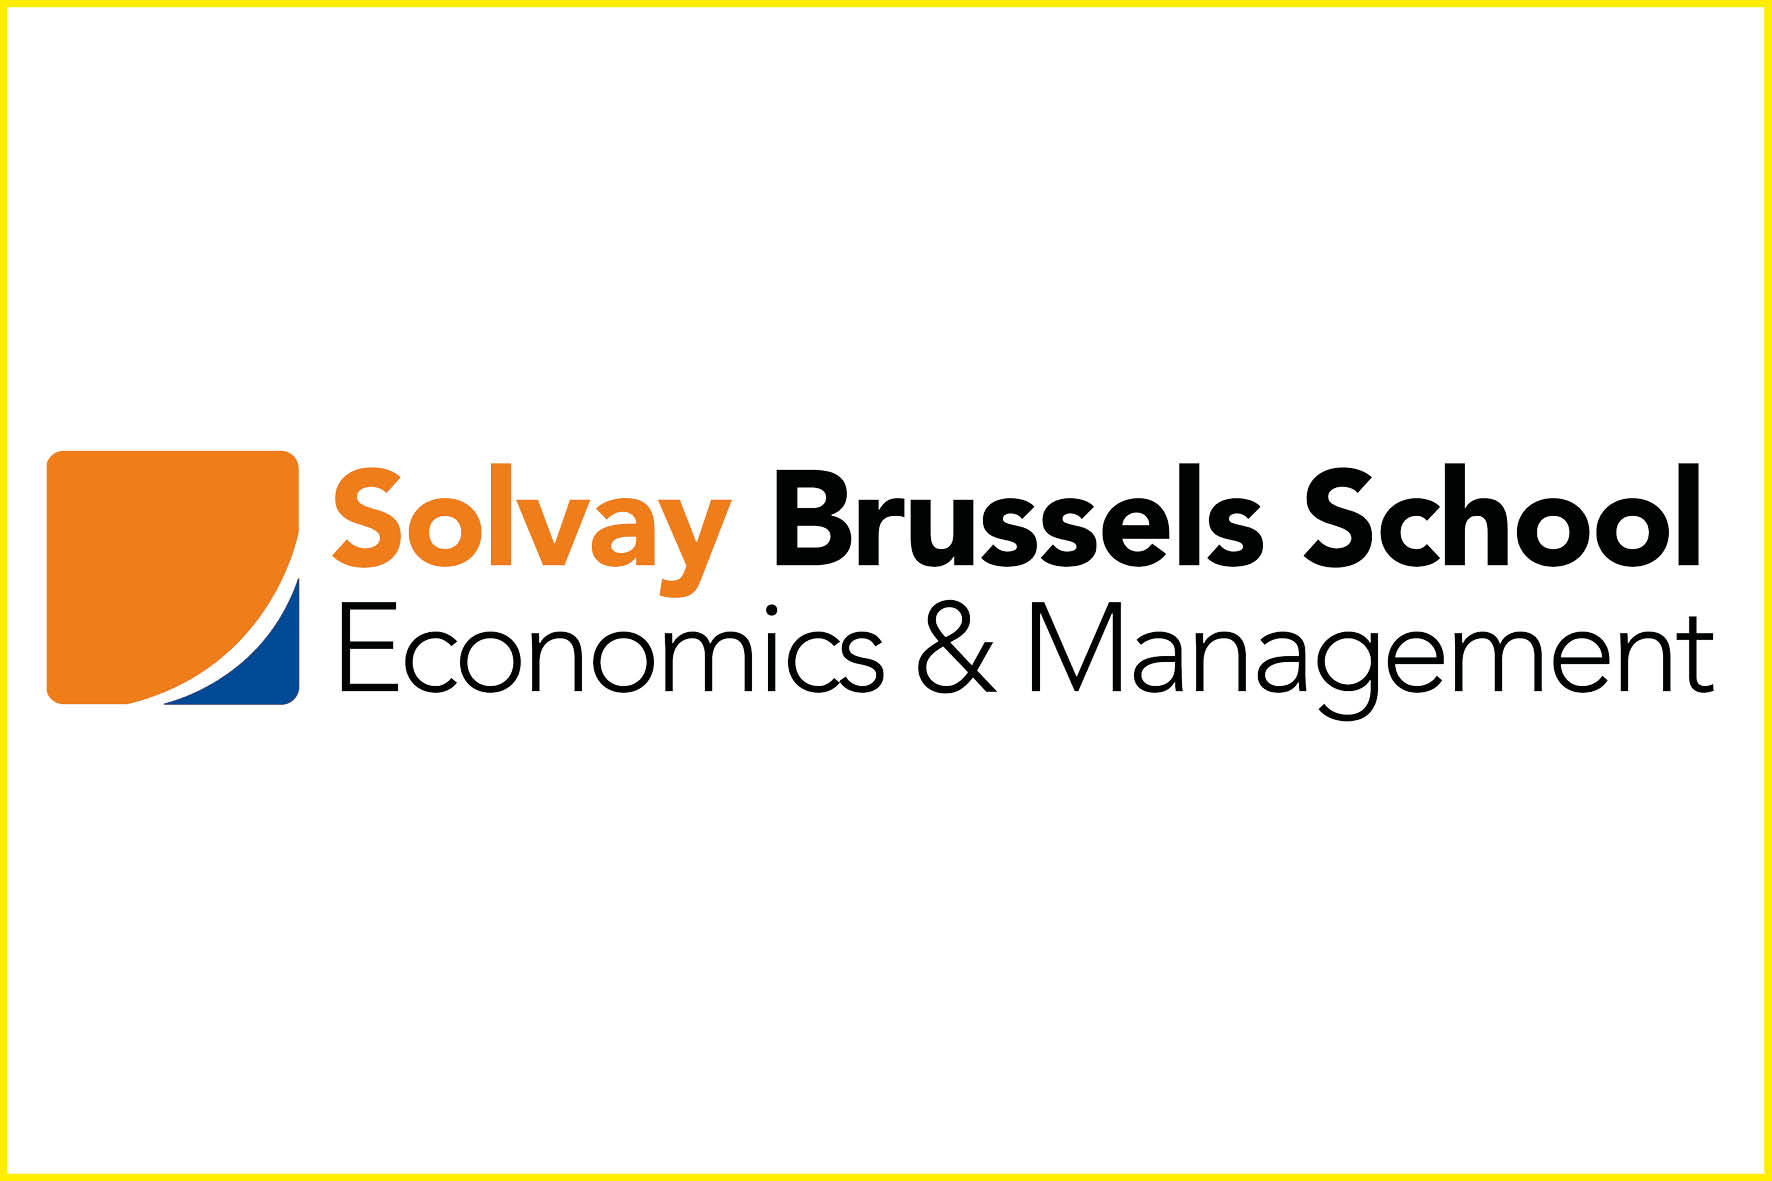 mark-com-event-Solvay-Brussels-School